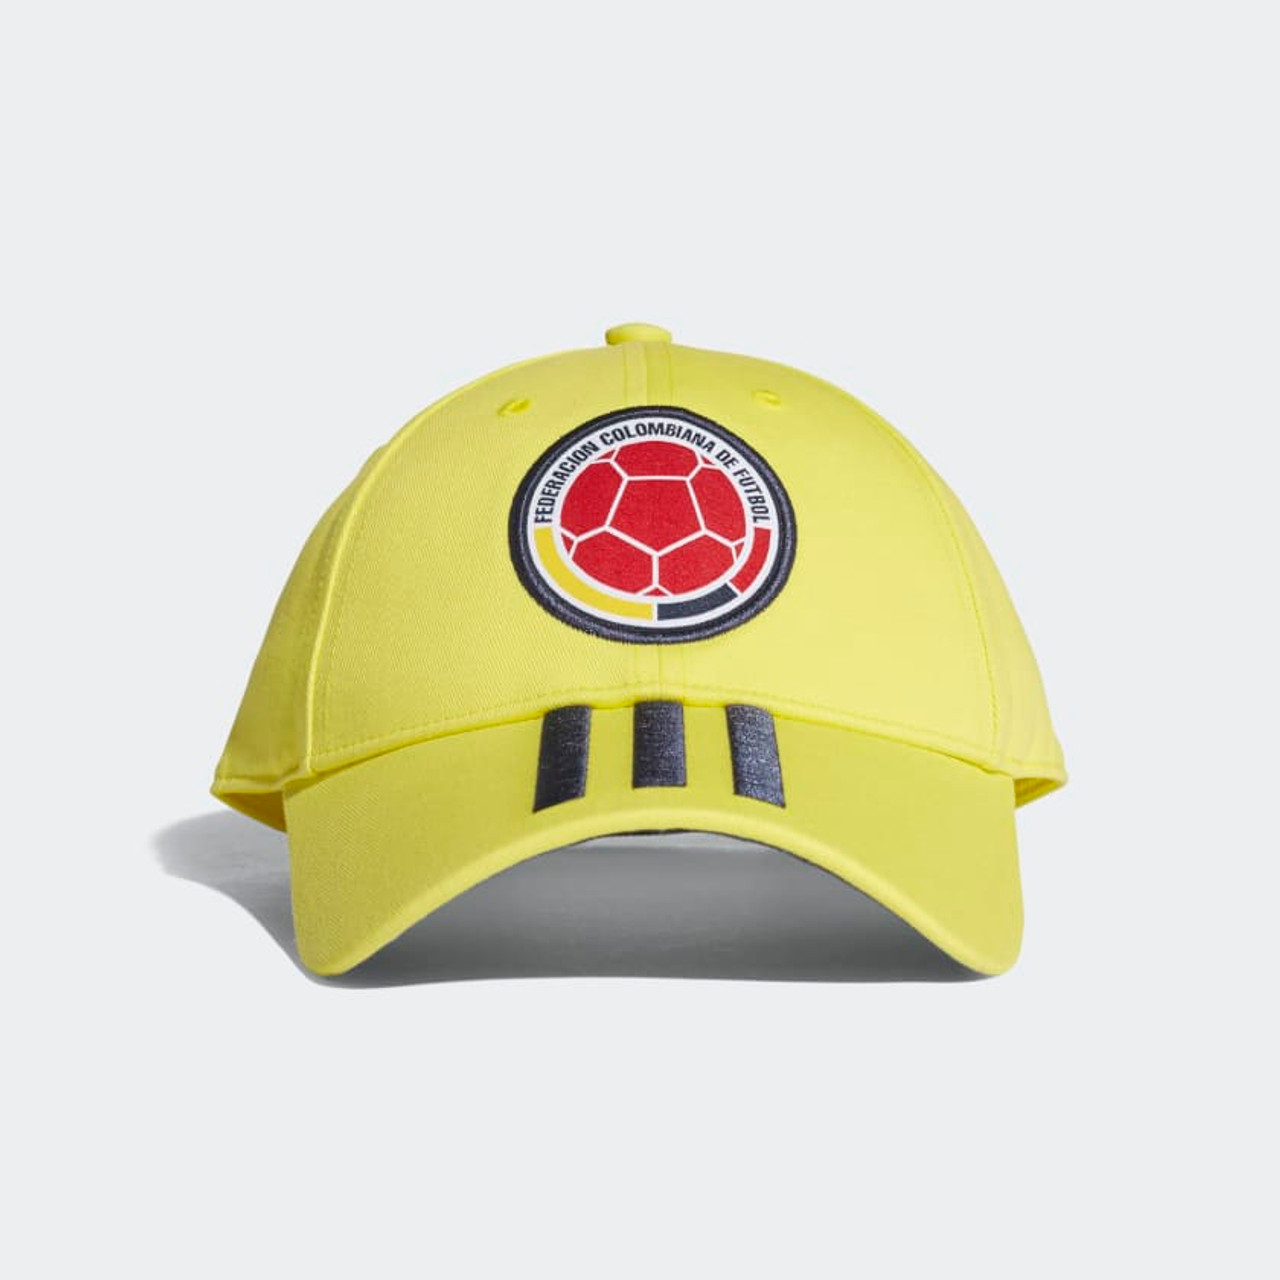 ADIDAS COLOMBIA 2018 YELLOW 3 STRIPES HAT - Soccer Plus 41eb60a4b50